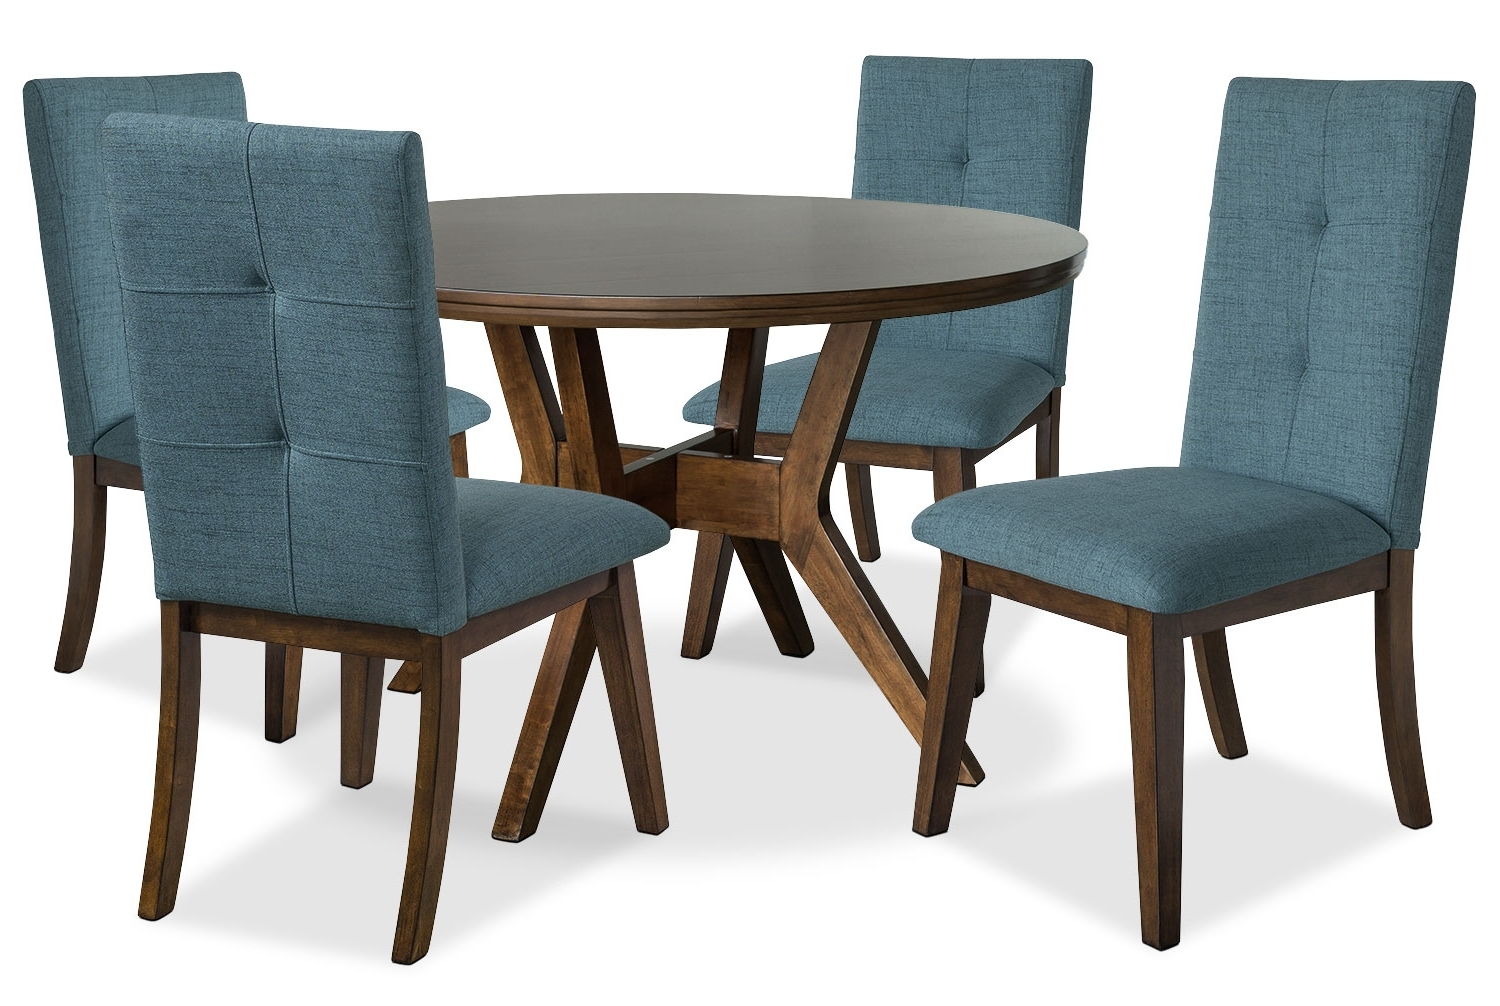 Preferred Round Wood Dining Table 5 Chairs 2 Leaves Regarding Jaxon 6 Piece Rectangle Dining Sets With Bench & Wood Chairs (View 22 of 25)